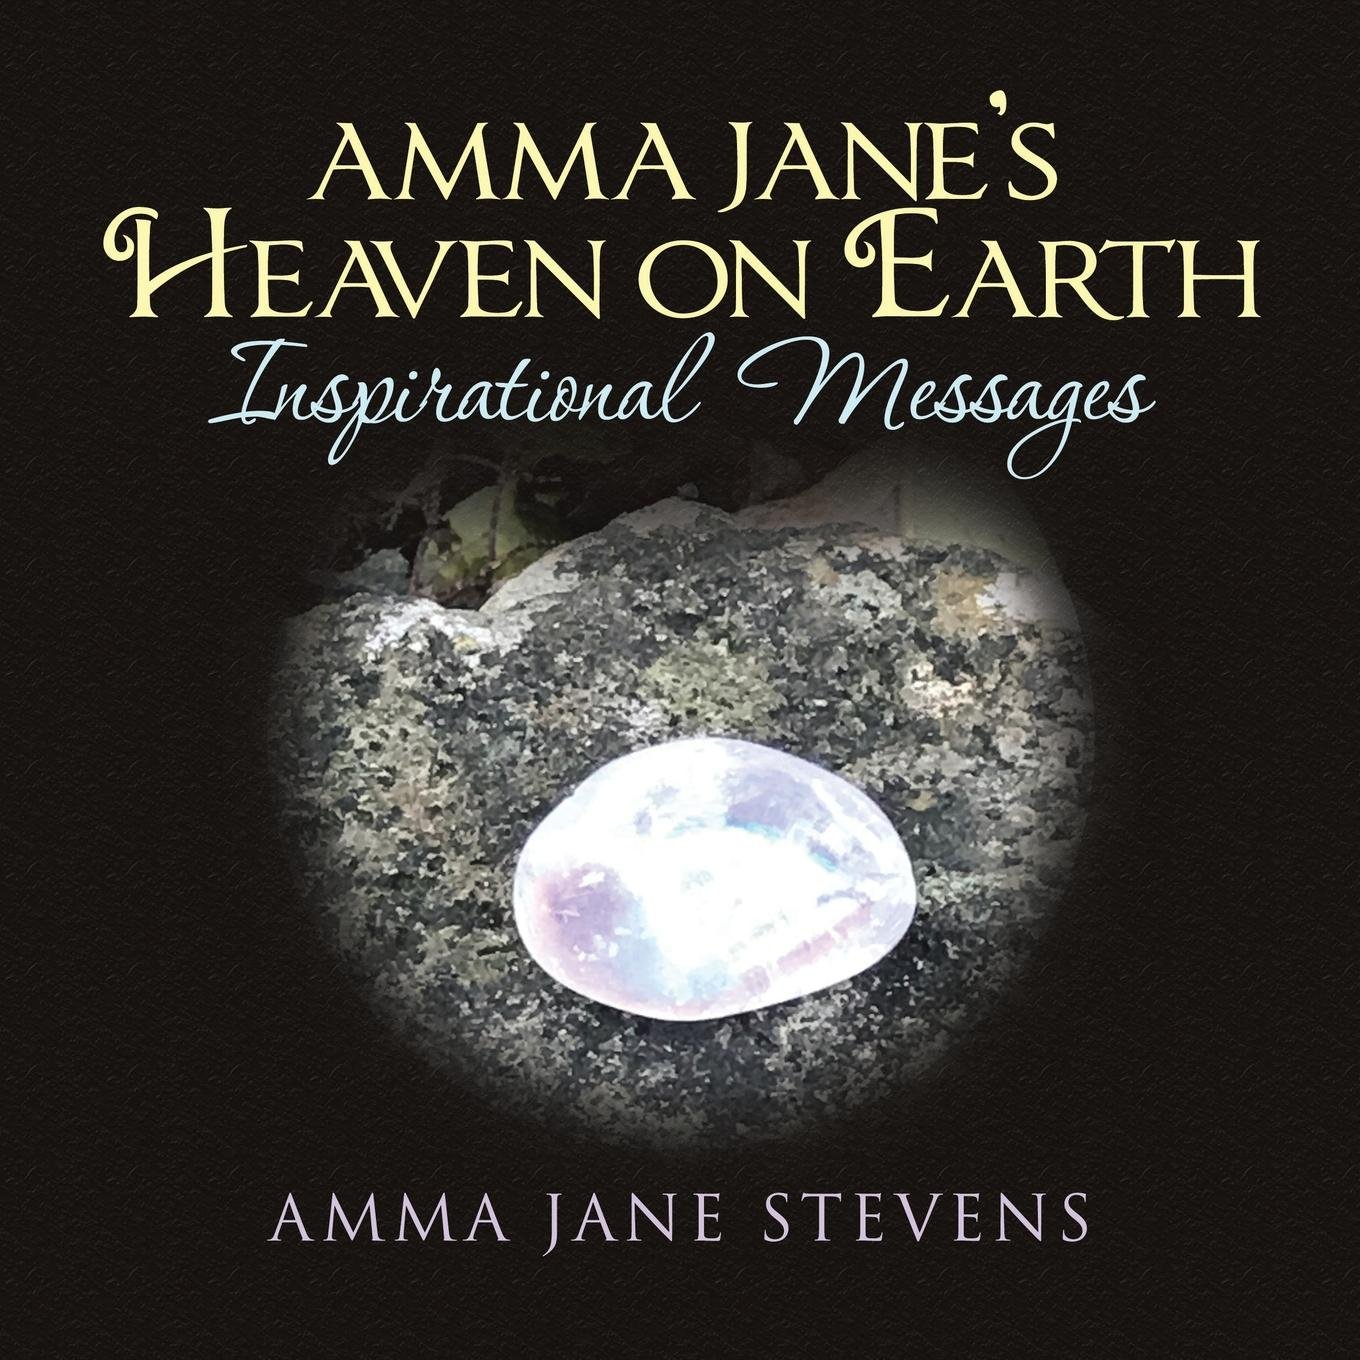 Amma Jane's Heaven on Earth Inspirational Messages pdf